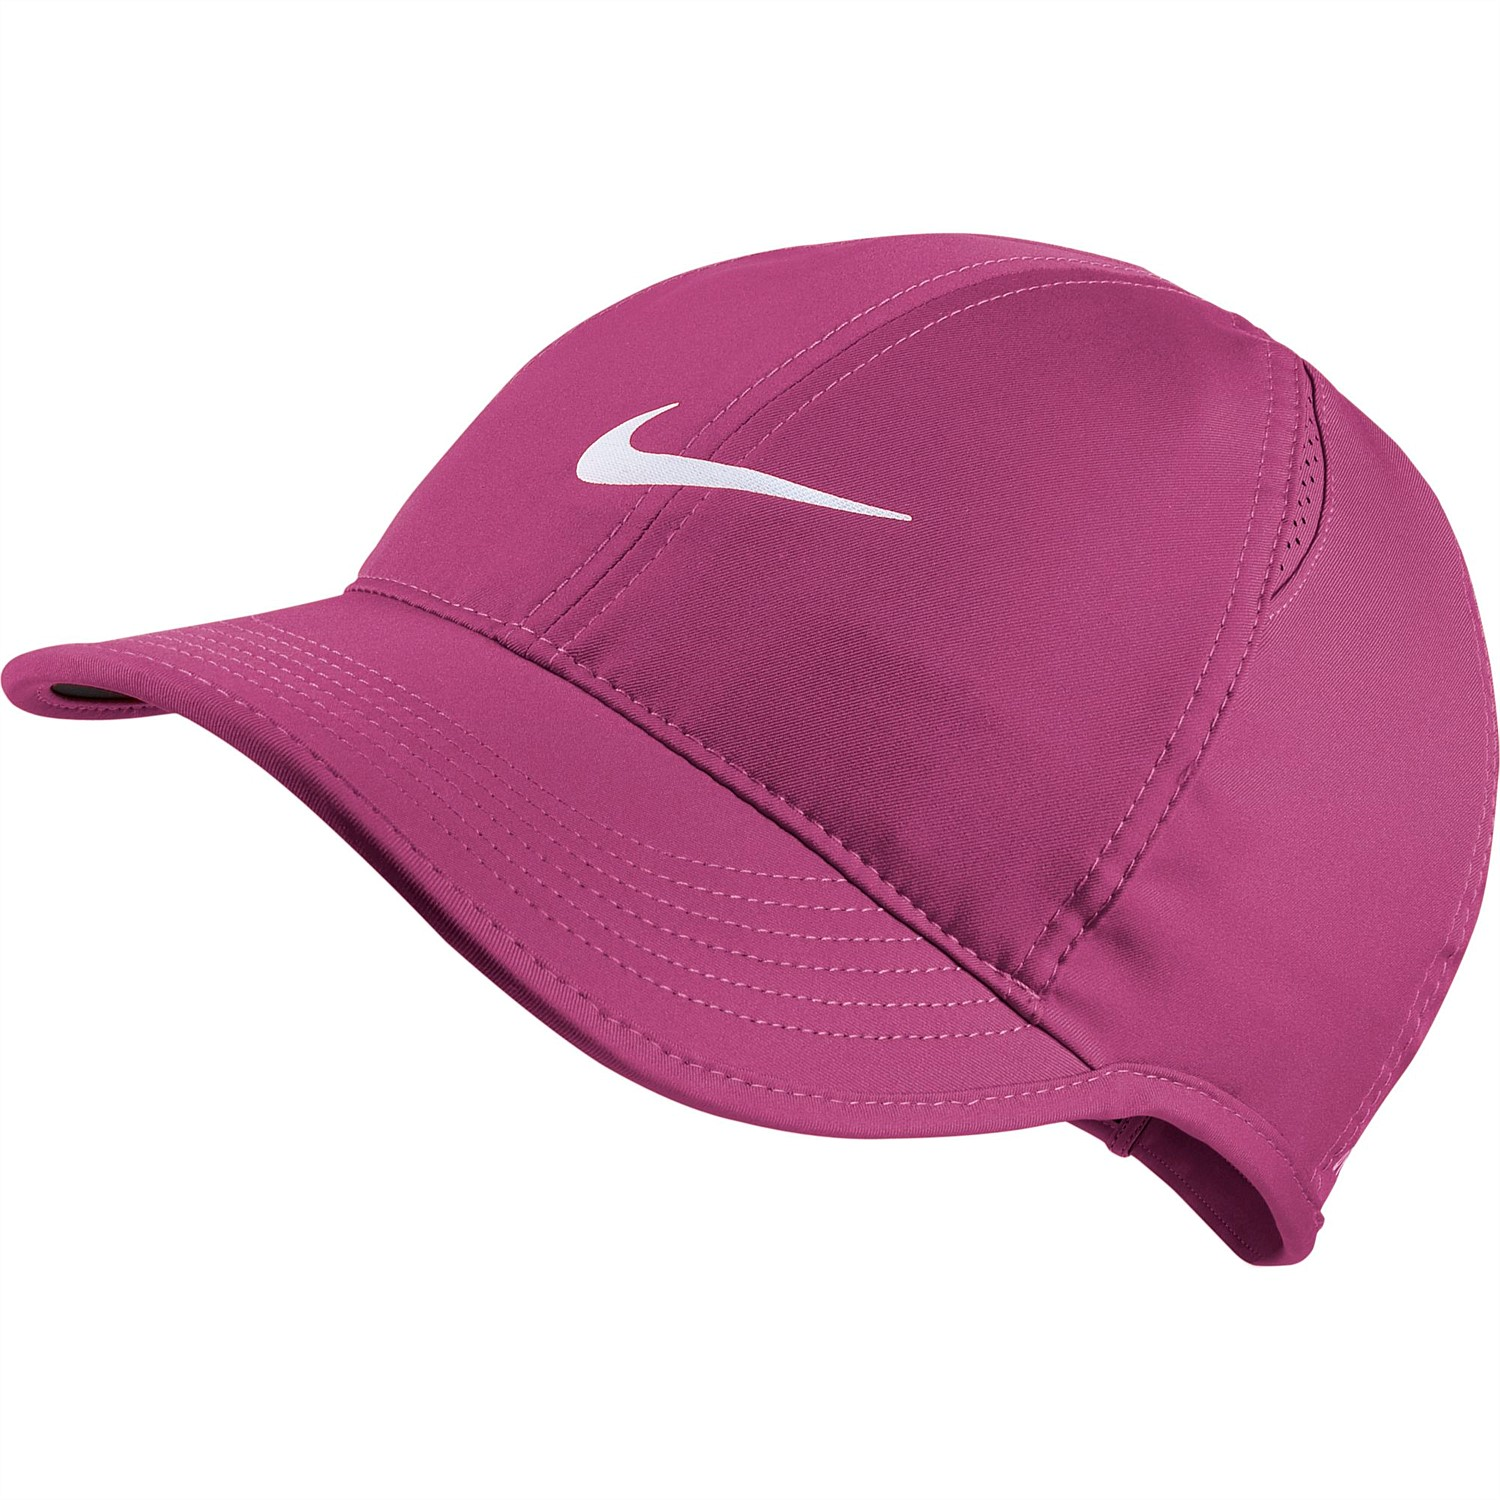 dc3e4850 Nike | Shop Nike Training and Lifestyle Clothing, Footwear and Accessories  | Stirling Sports - NikeCourt AeroBill Featherlight Tennis Cap